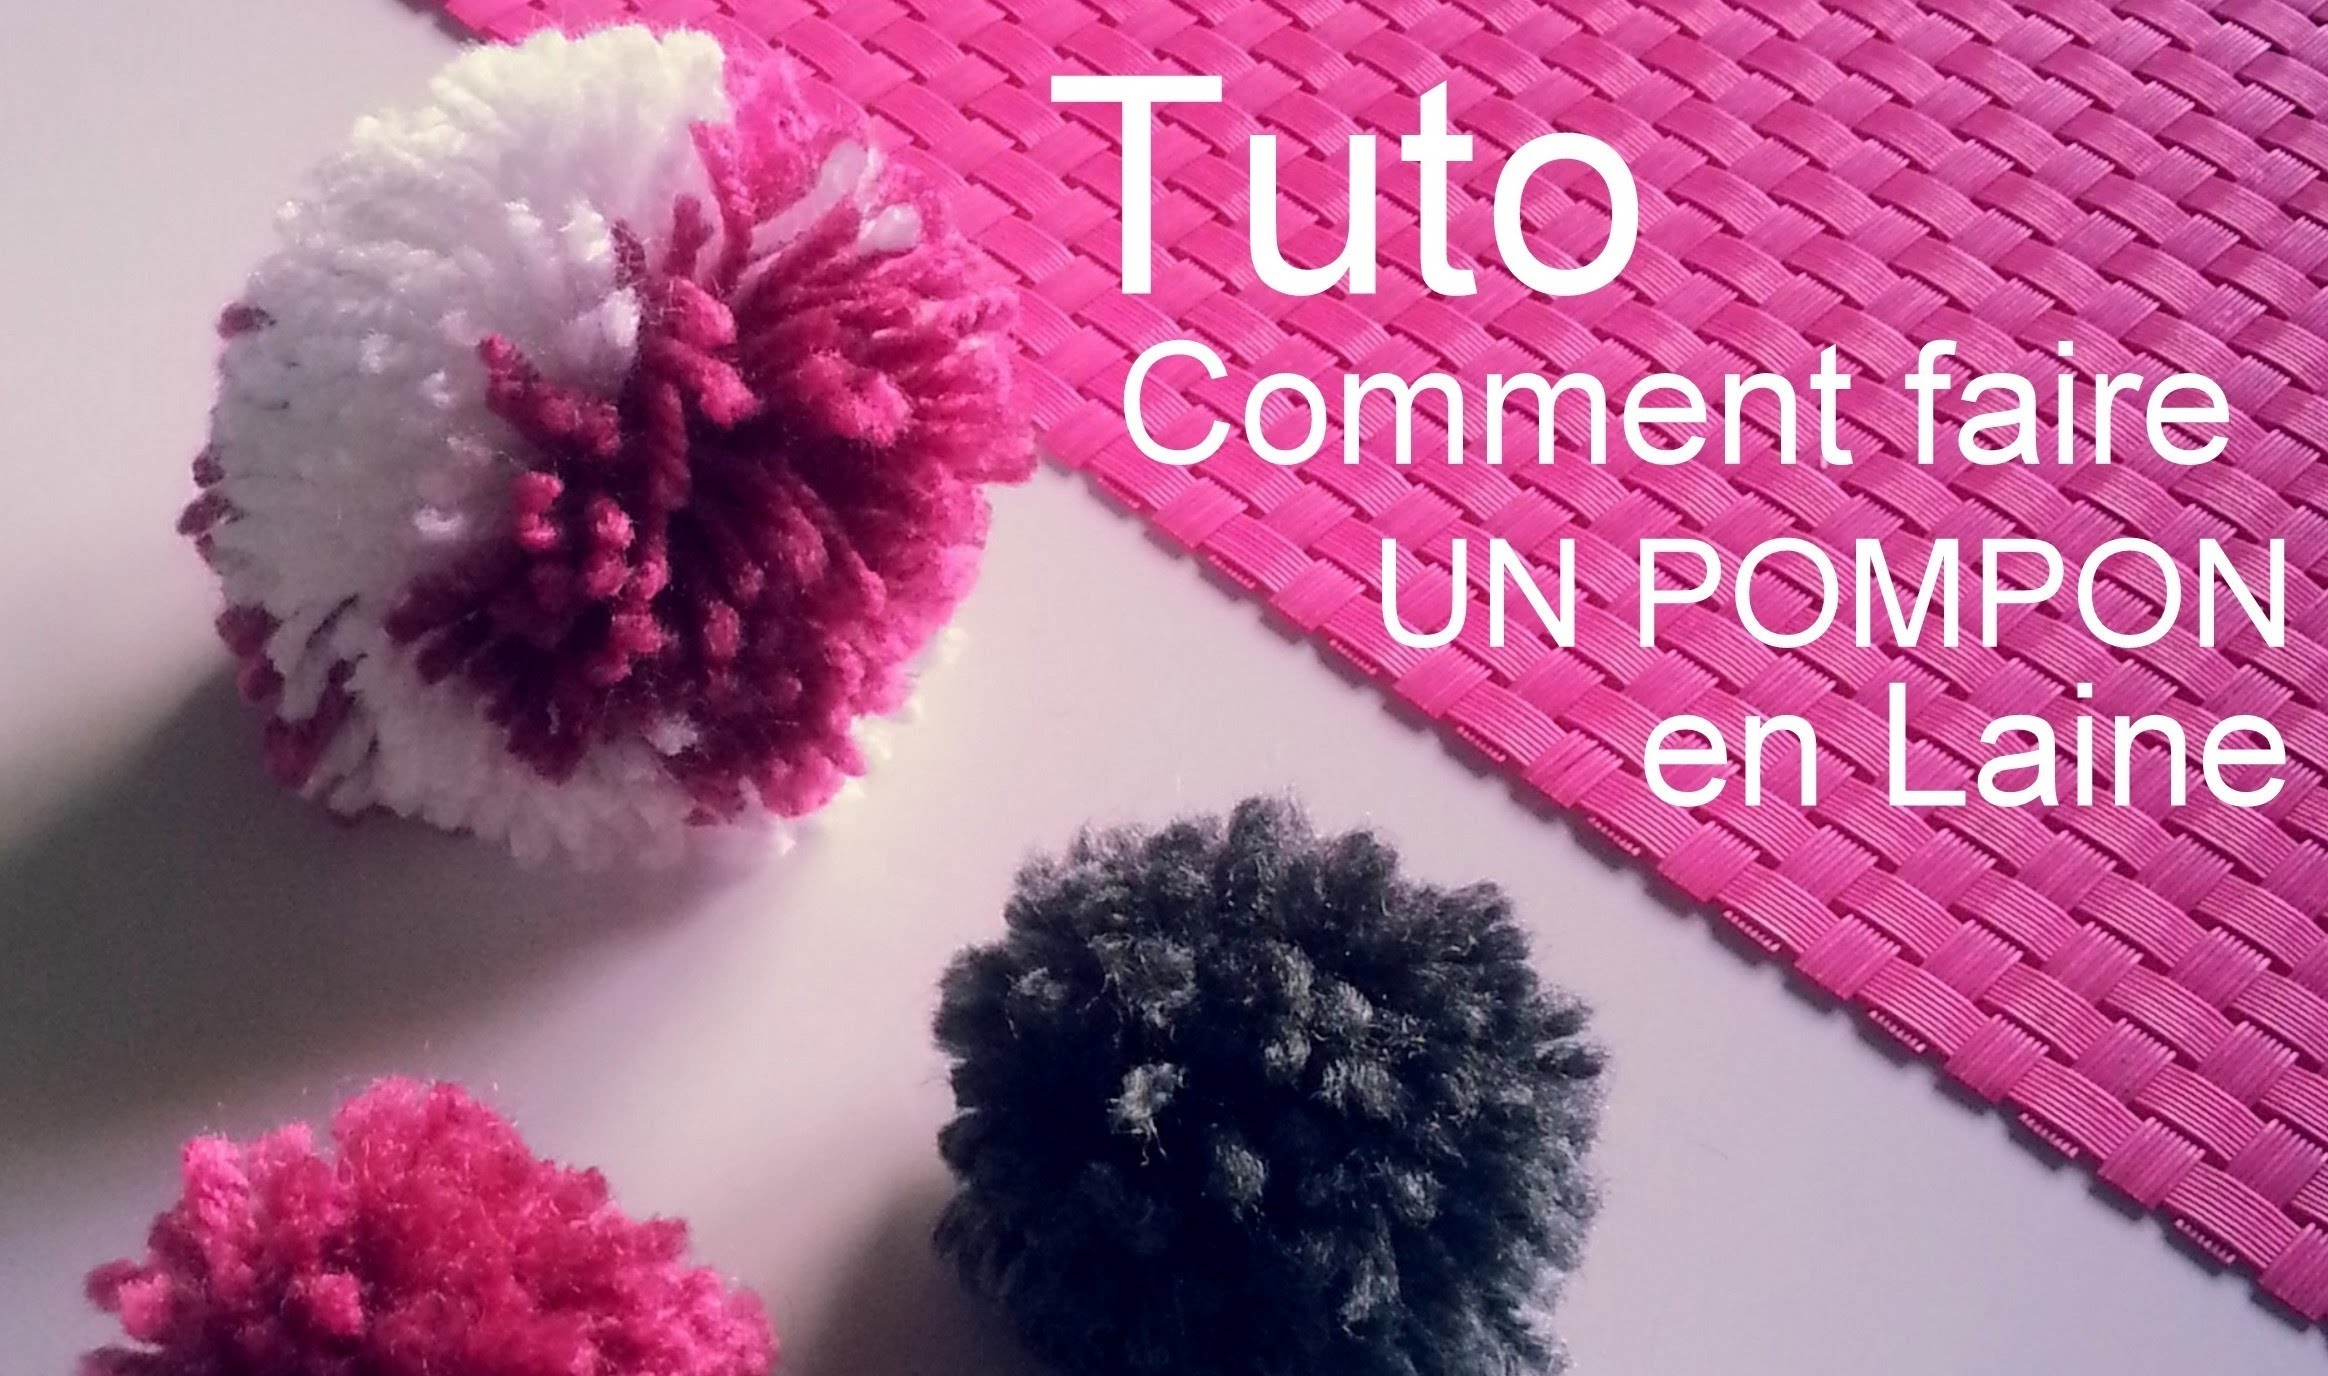 tuto en vid o comment faire un pompon en laine astuces. Black Bedroom Furniture Sets. Home Design Ideas